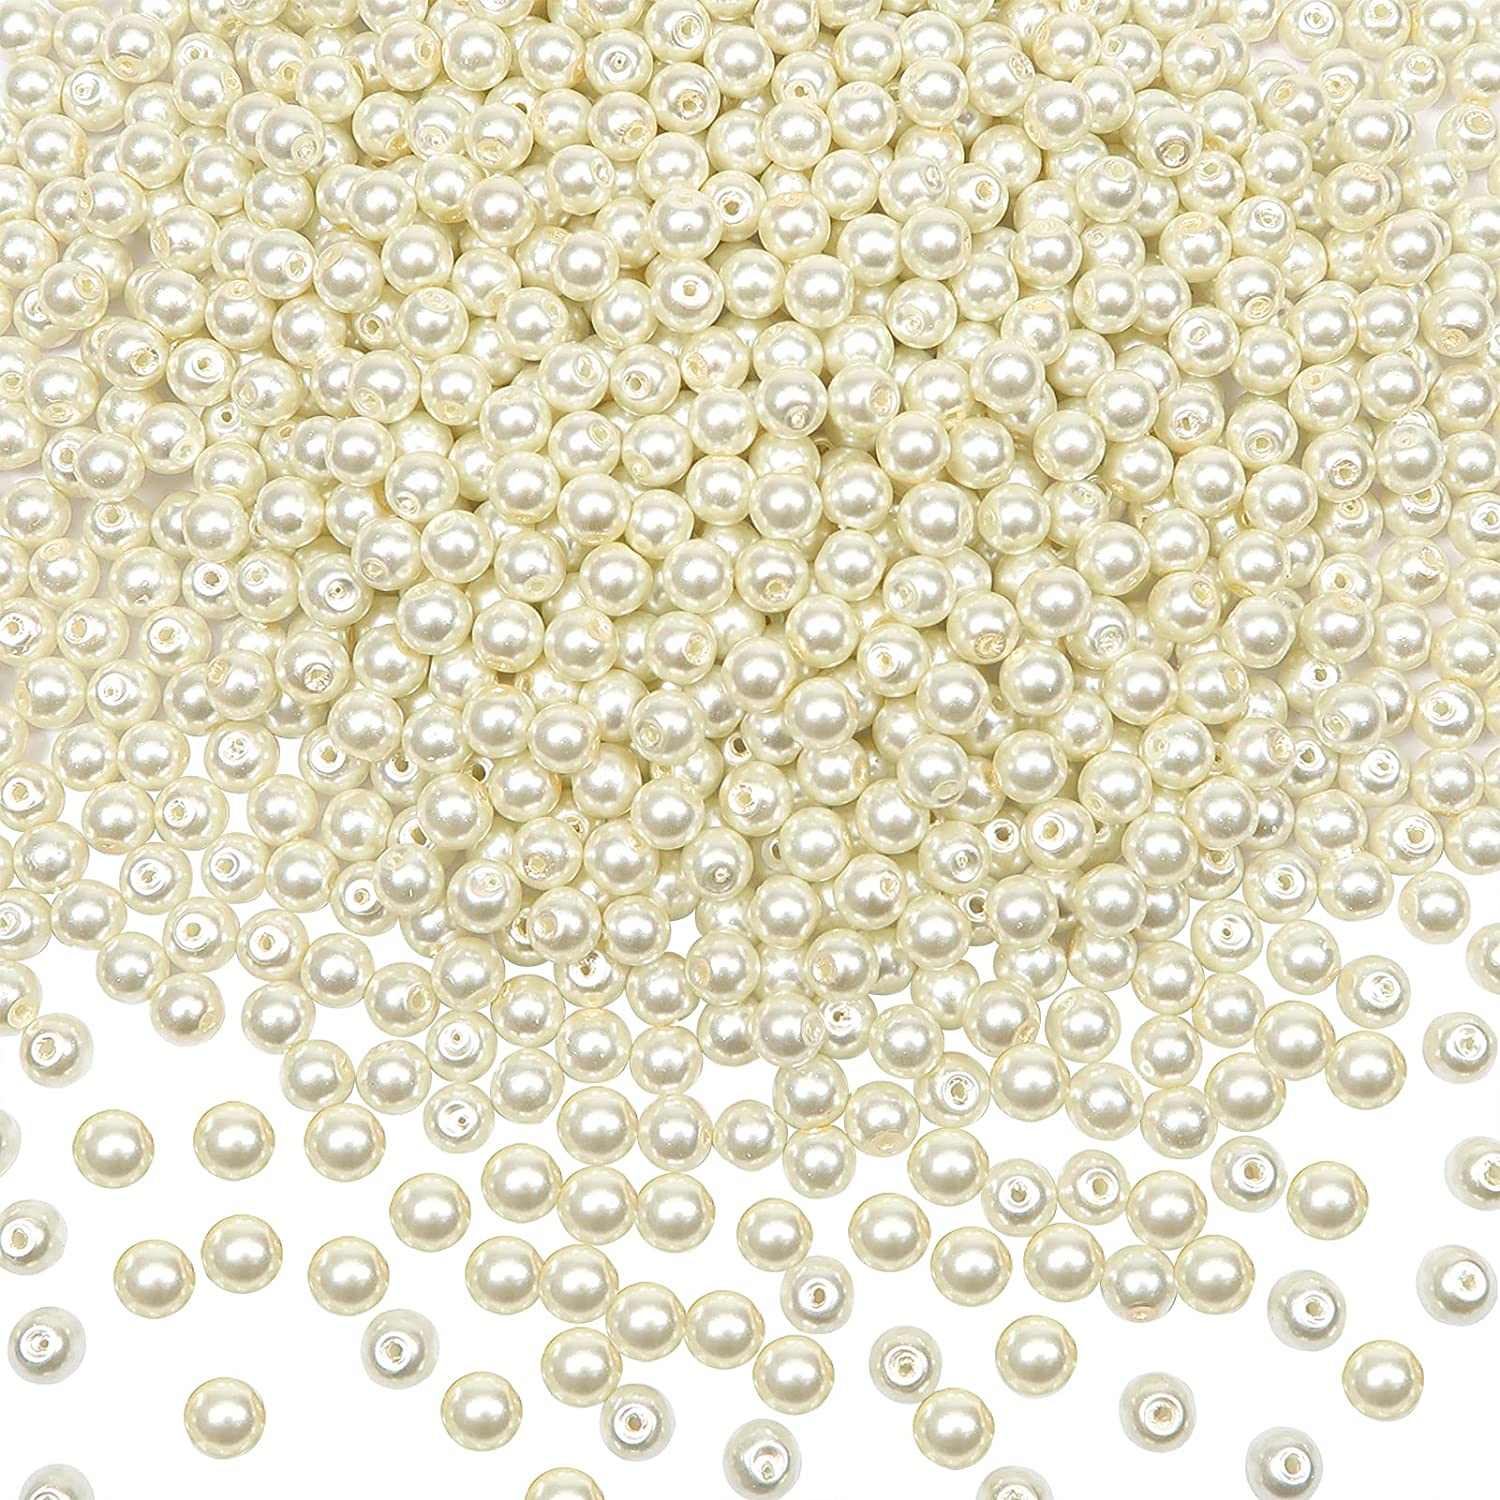 TOAOB 1000pcs Glass Pearl Beads Ivory 6mm Selling and selling with White Mail order